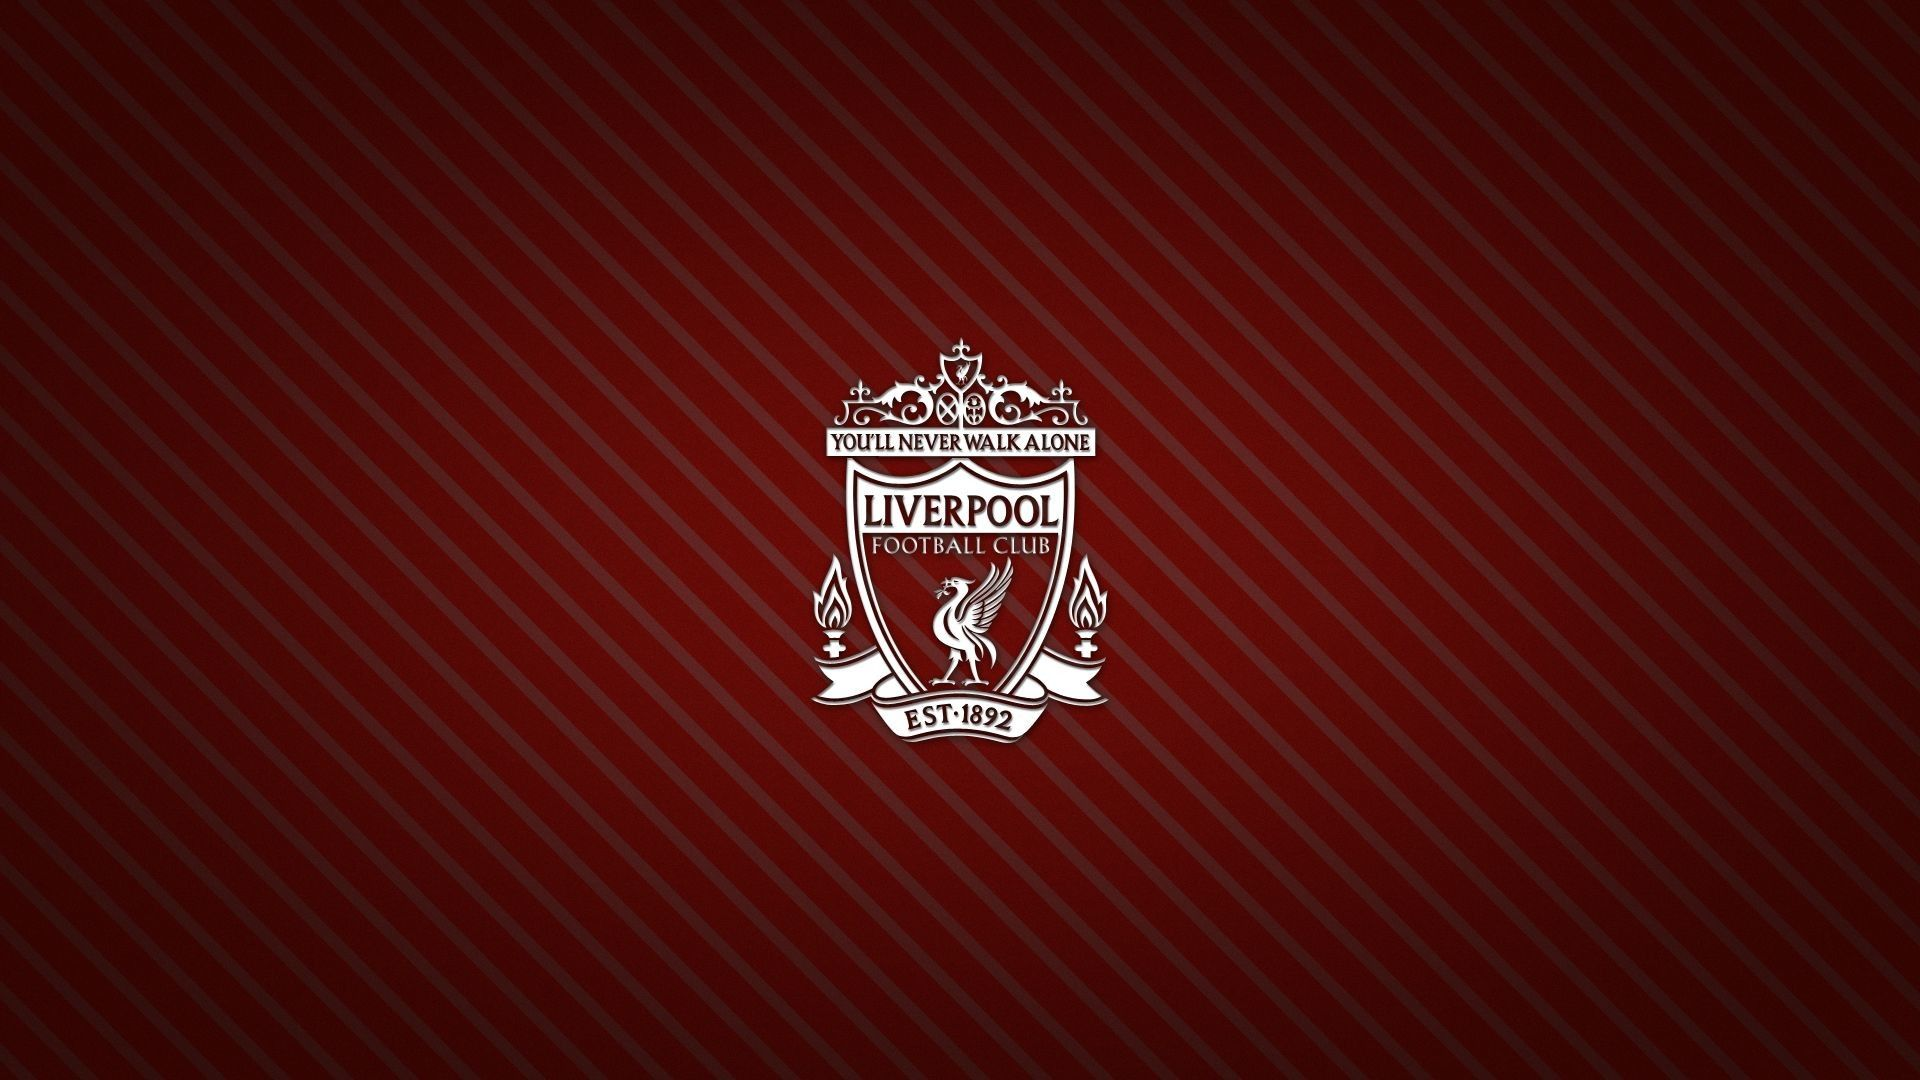 Pin on Football liverpool 1920x1080